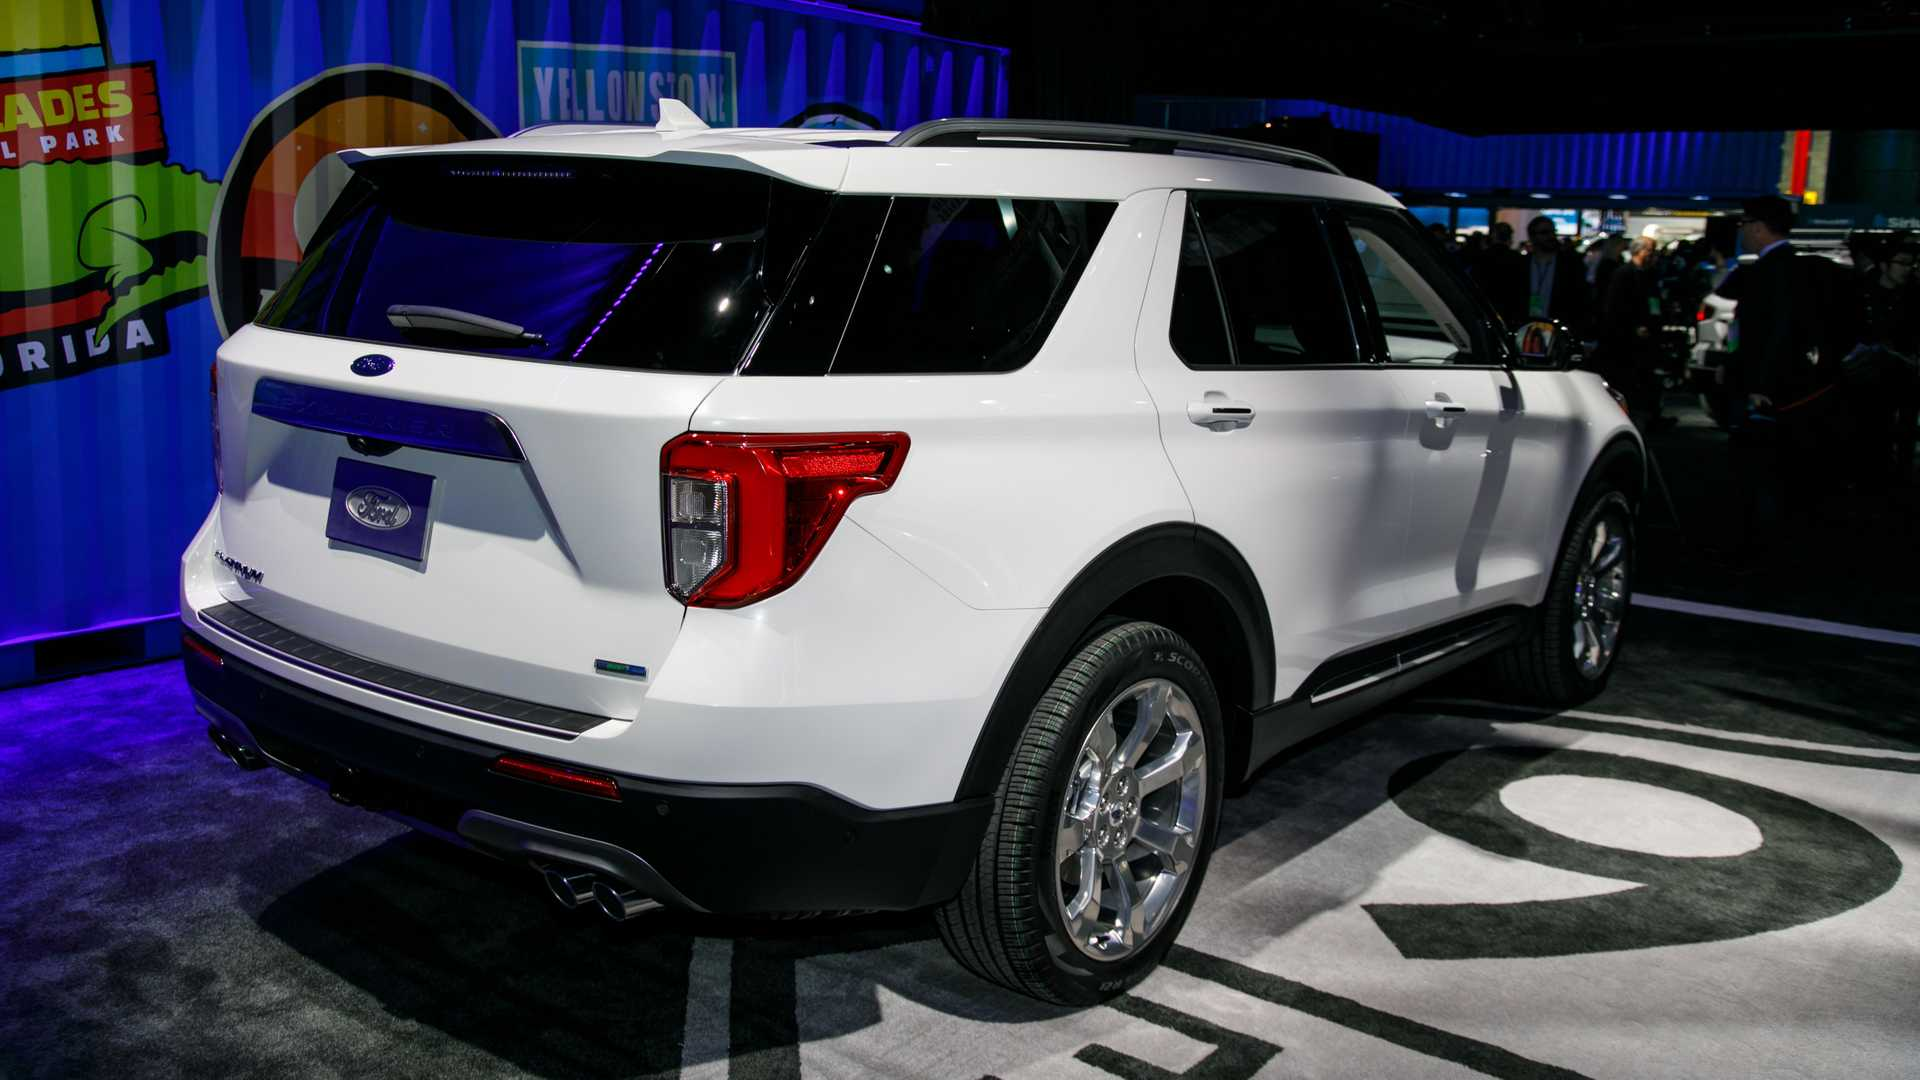 most expensive 2020 ford explorer costs 64 610 most expensive 2020 ford explorer costs